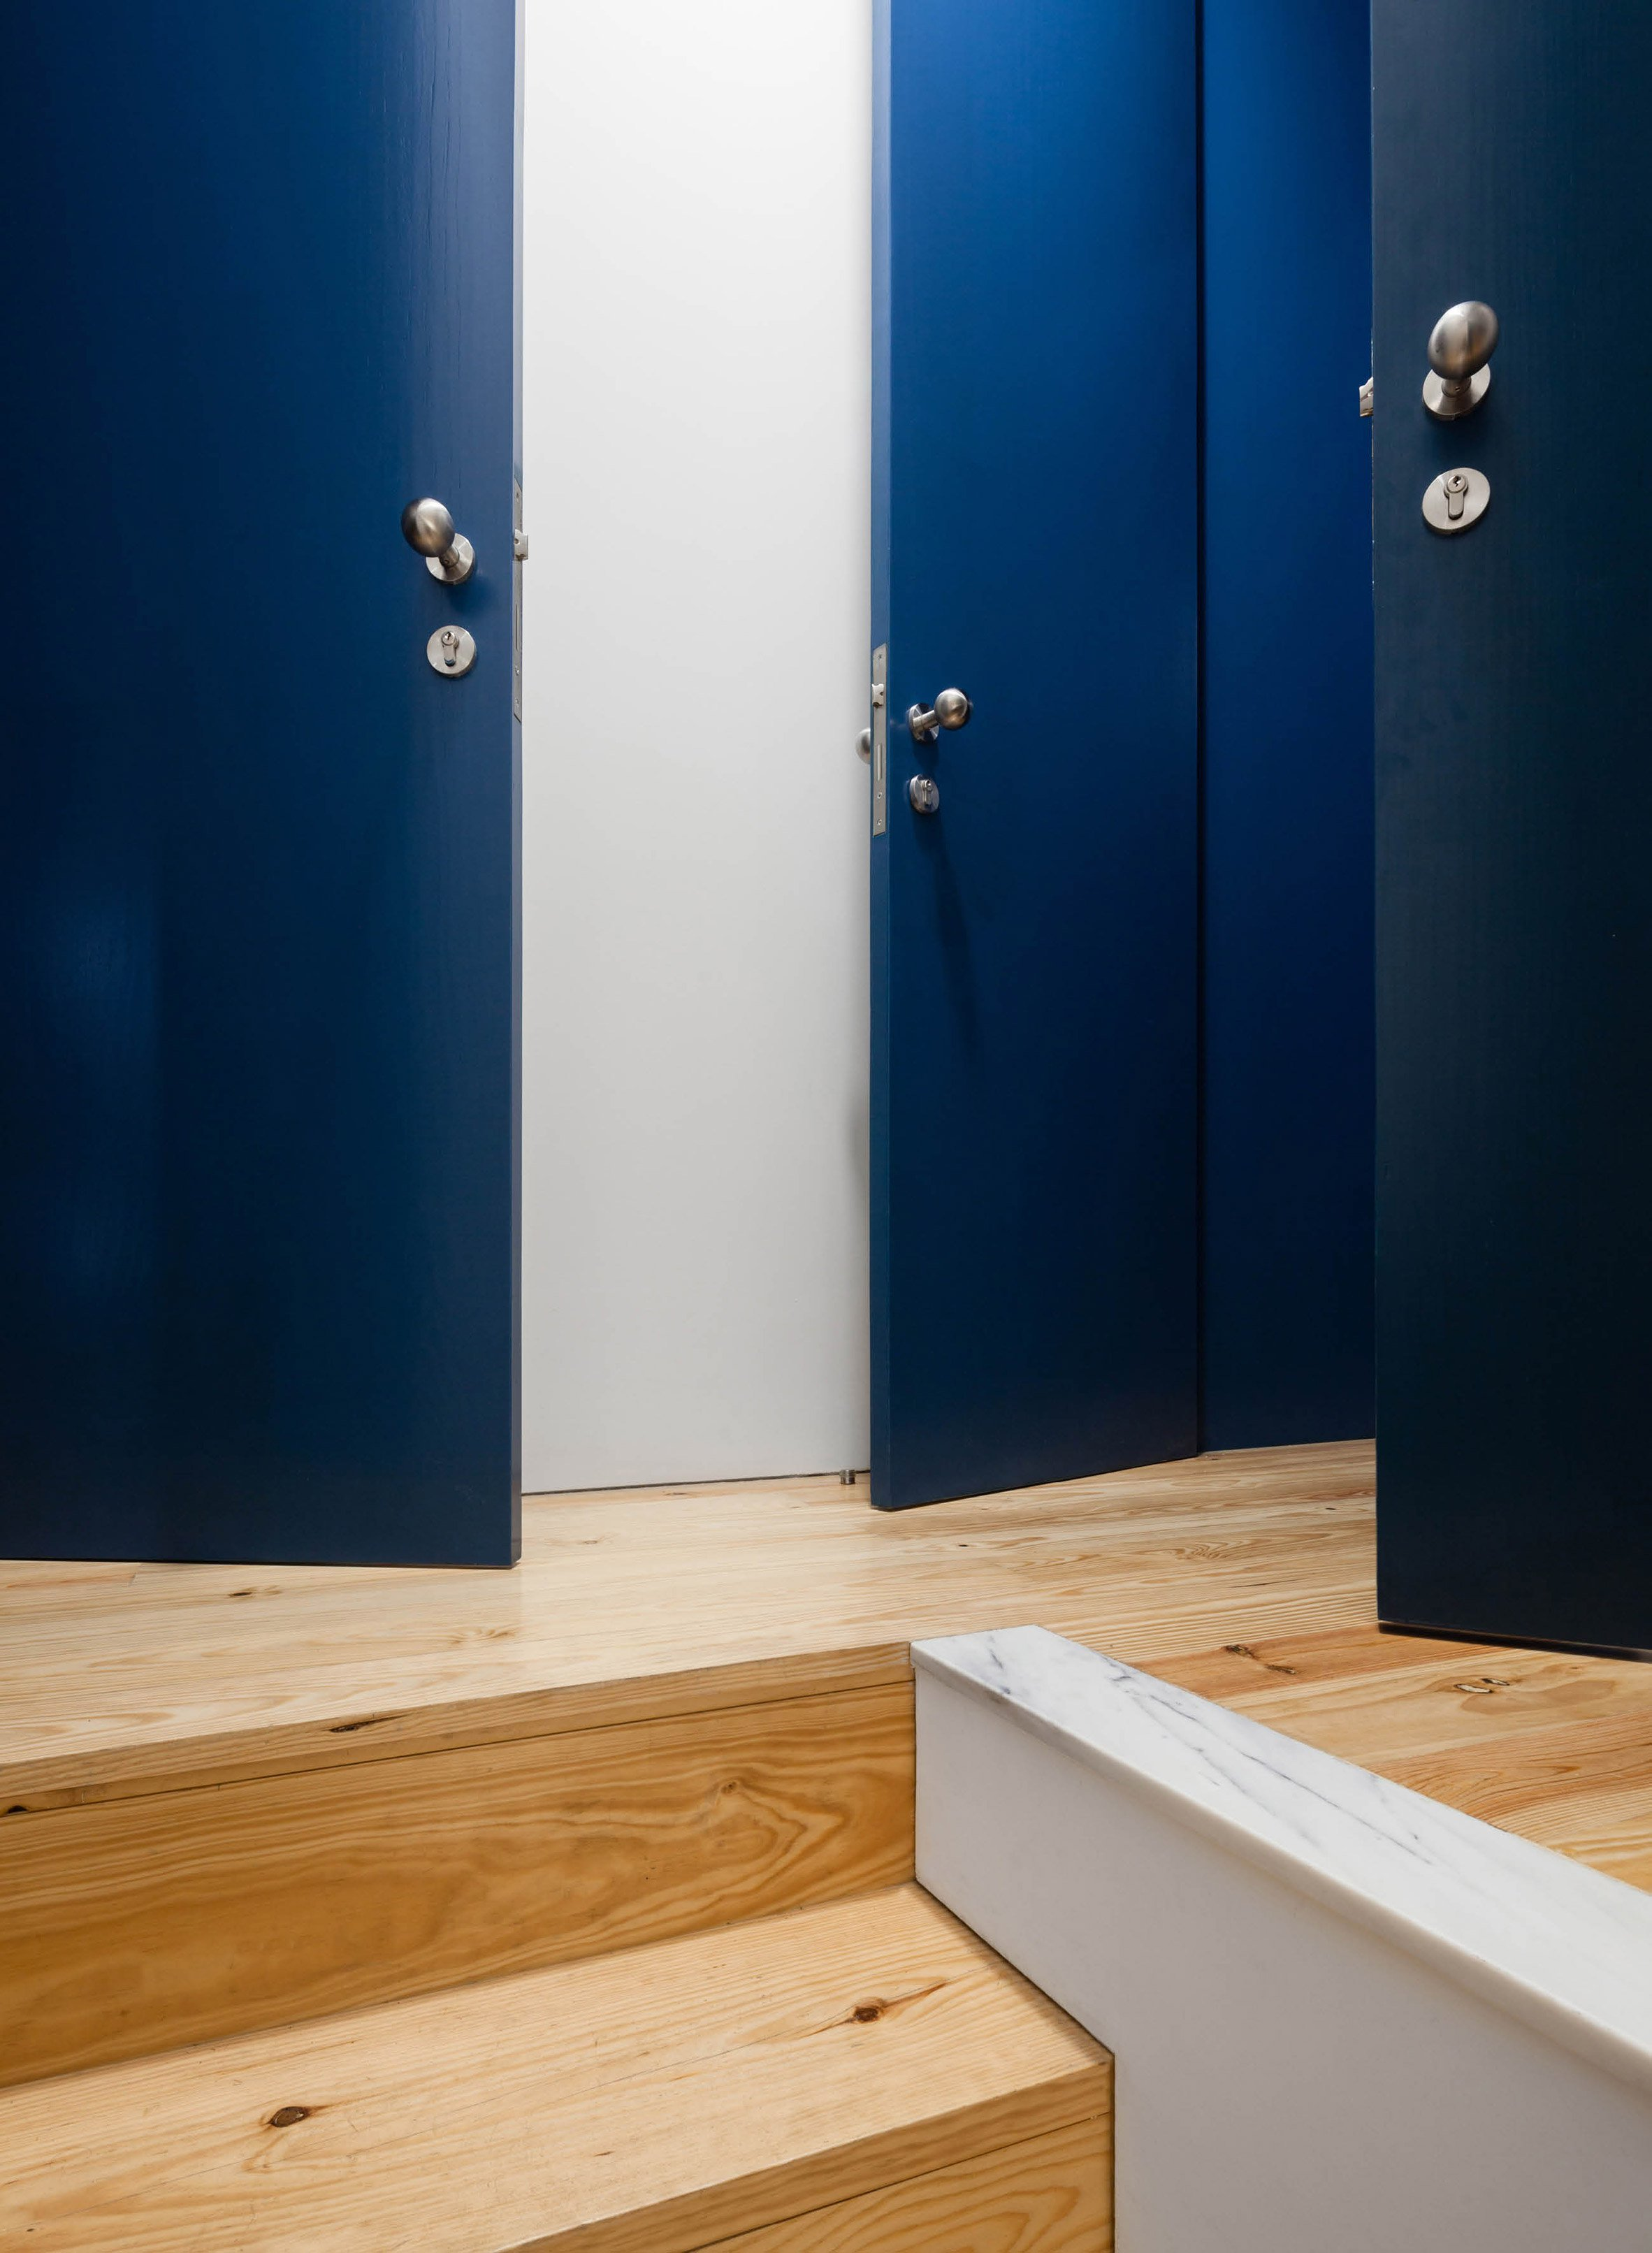 Portuguese Architecture Studio Fala Atelier Has Transformed It Into Five  Studio Apartments That Feature Matching Dark Blue Shutters And A Facade  Patterned ...